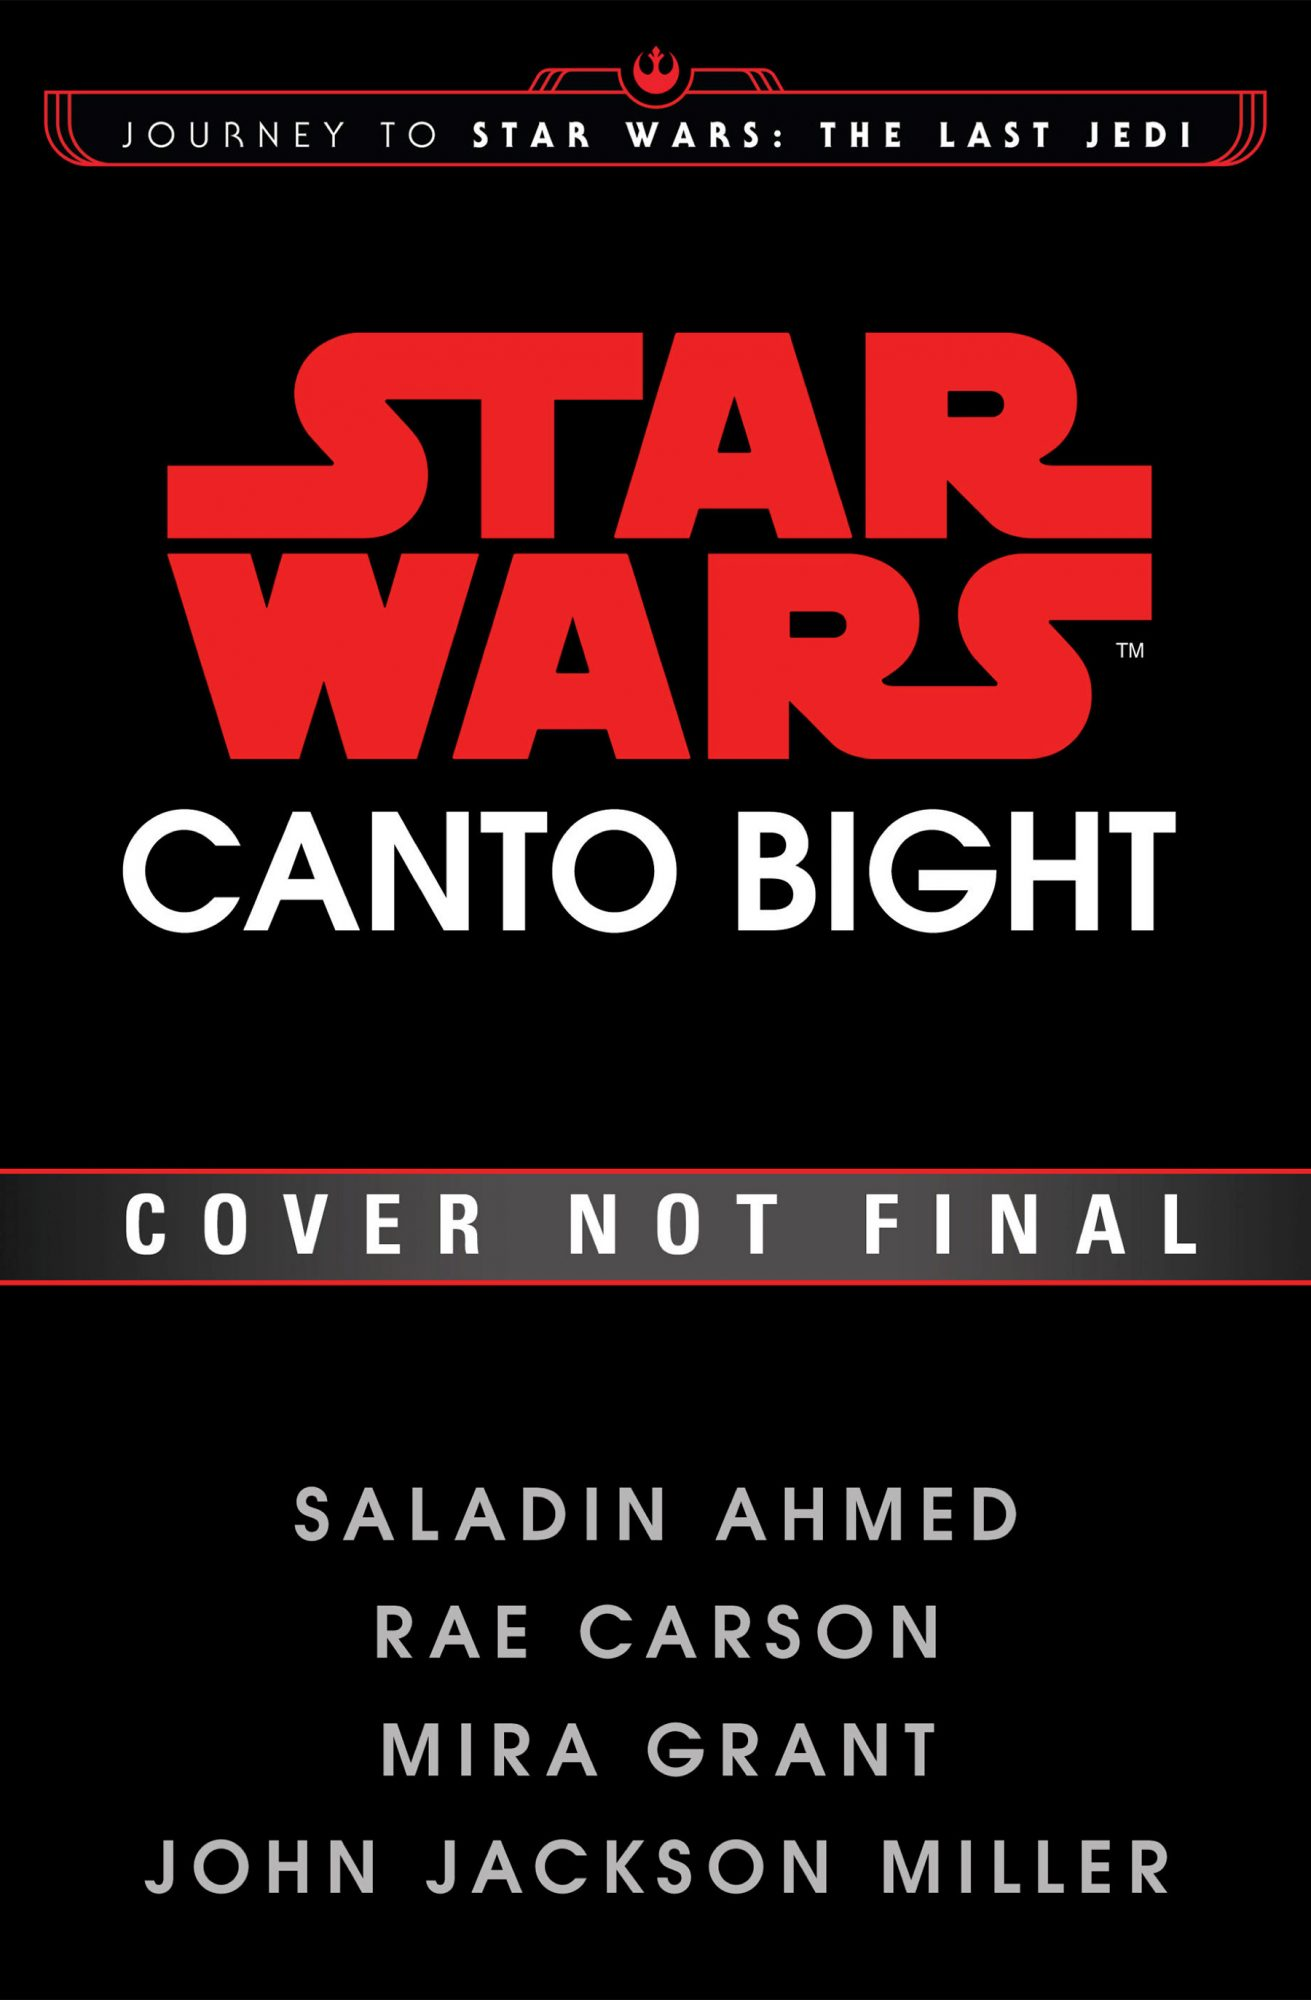 Canto Bight, by Saladin Ahmed, Rae Carson, Mira Grant, and John Jackson Miller